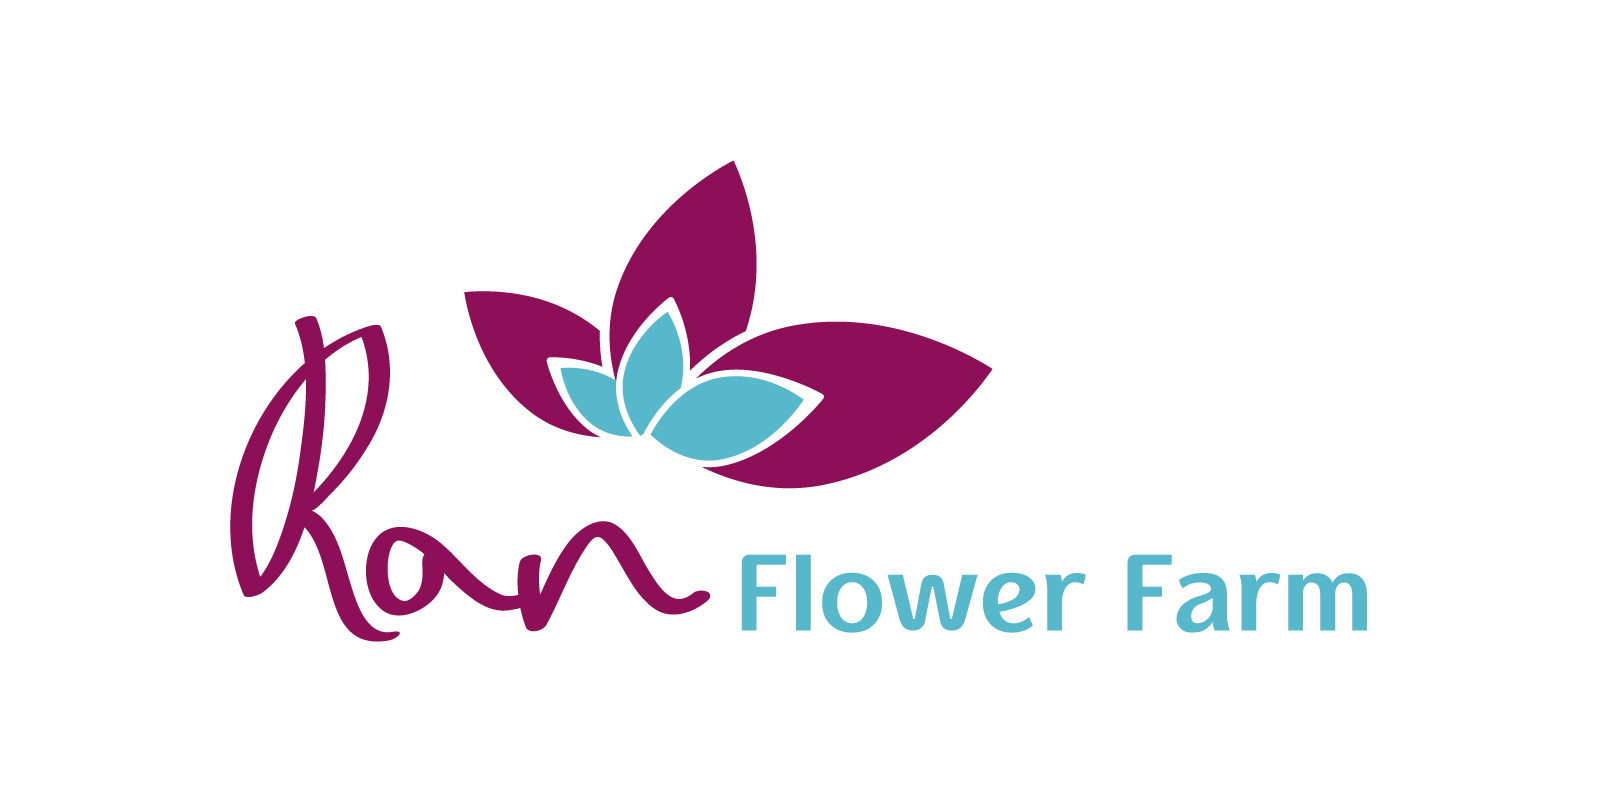 http://bigeyes.co.il/wp-content/uploads/2019/06/Ran-Flower-Farm-2.png